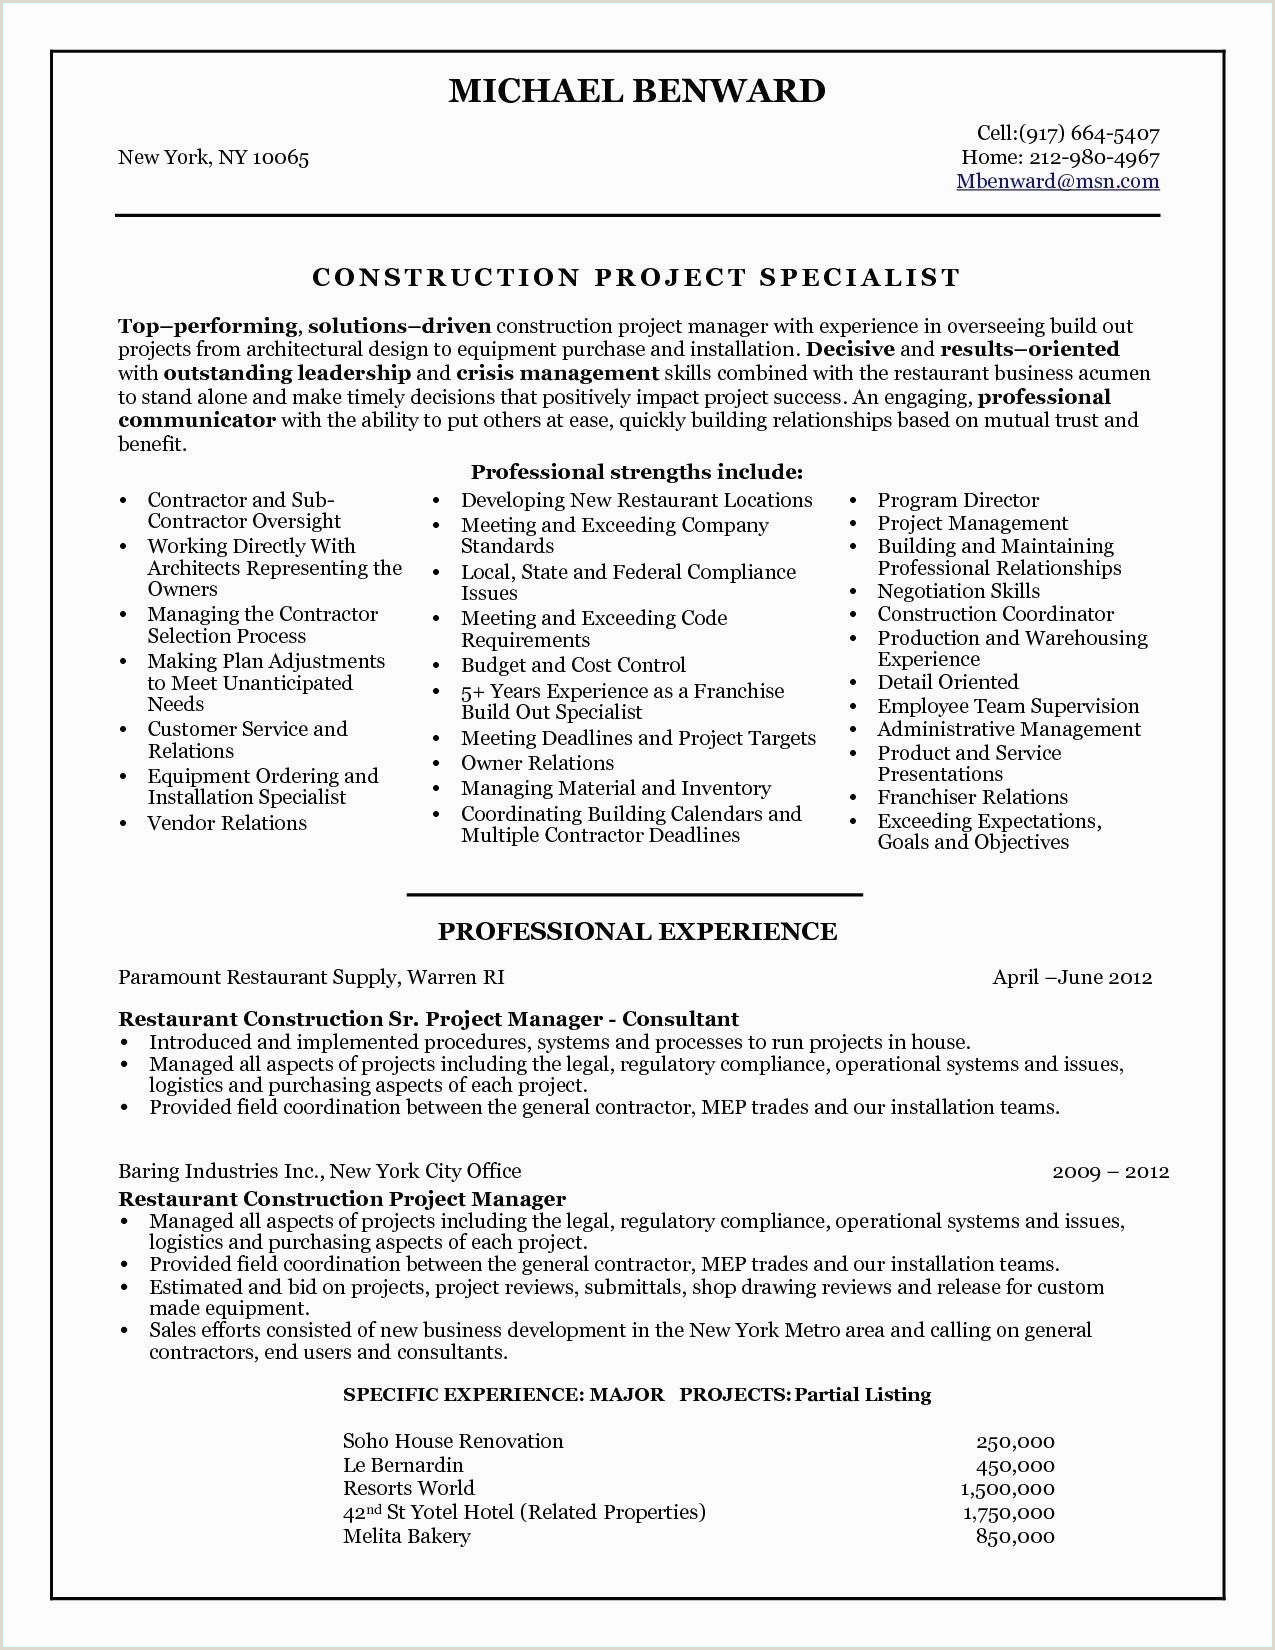 Cover Letter for Construction Professional Cover Letter for